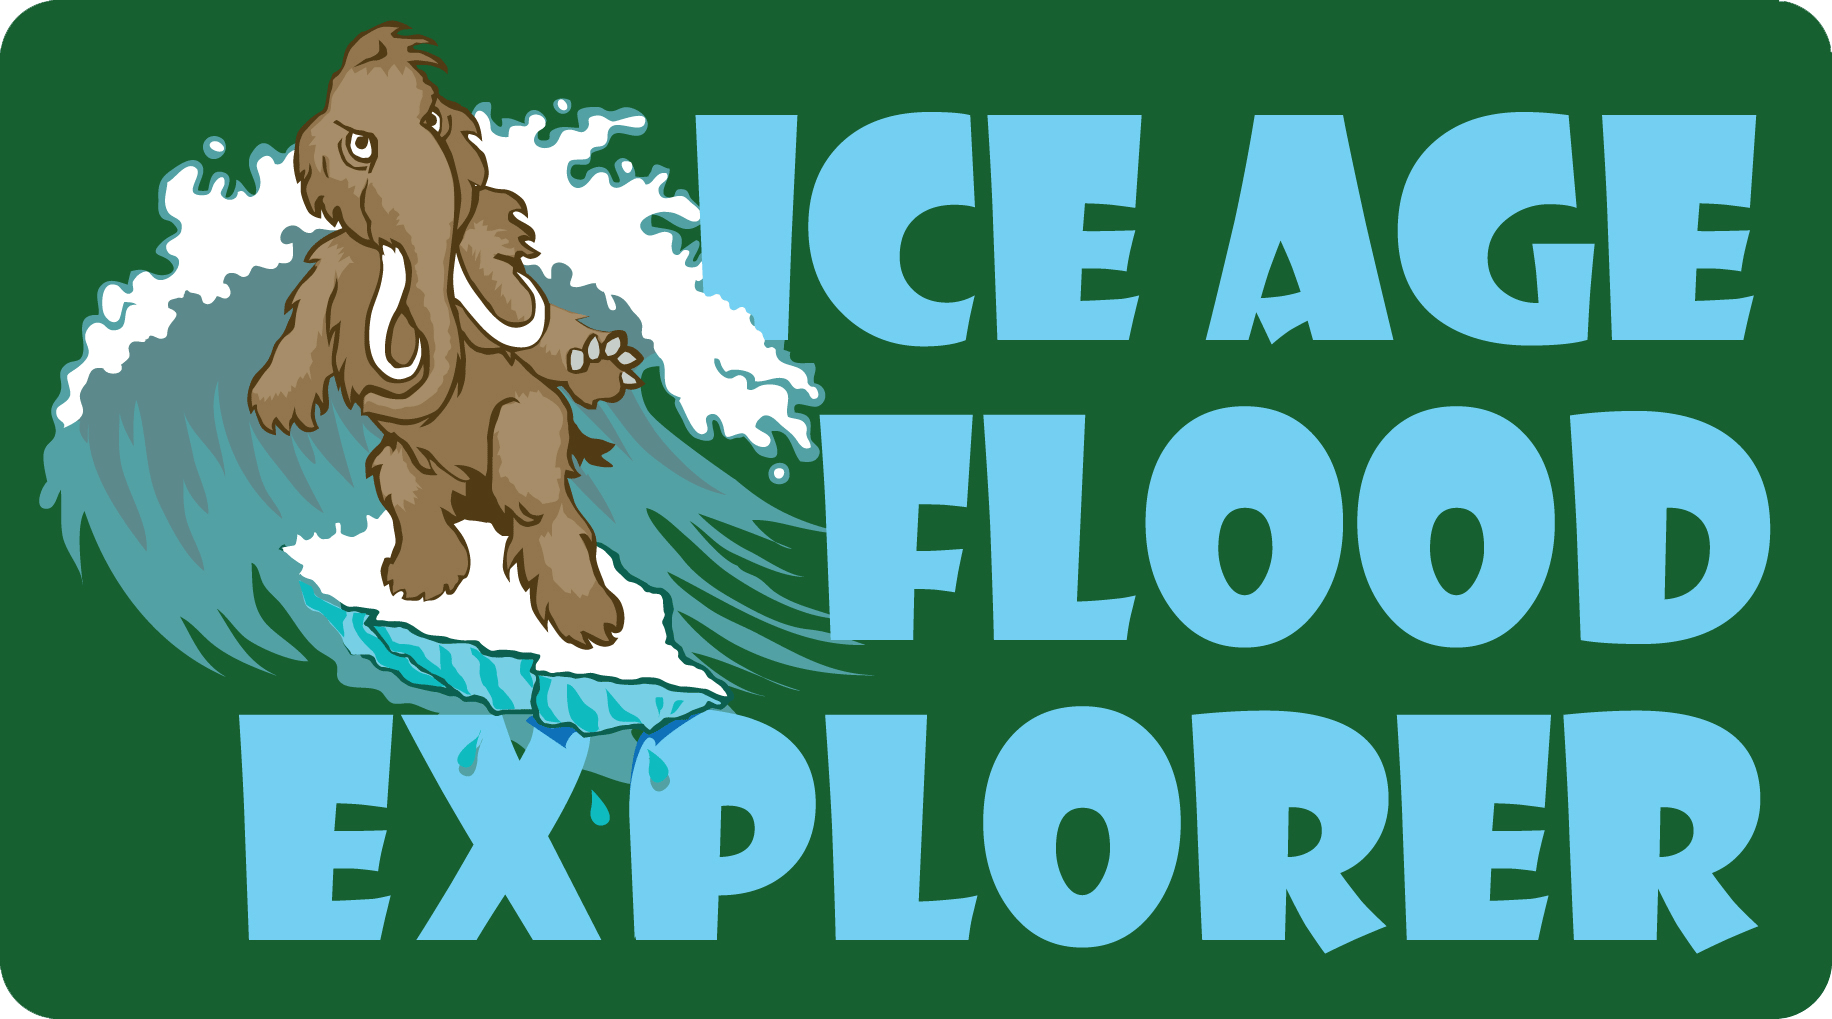 Ice Age Floods Explorer